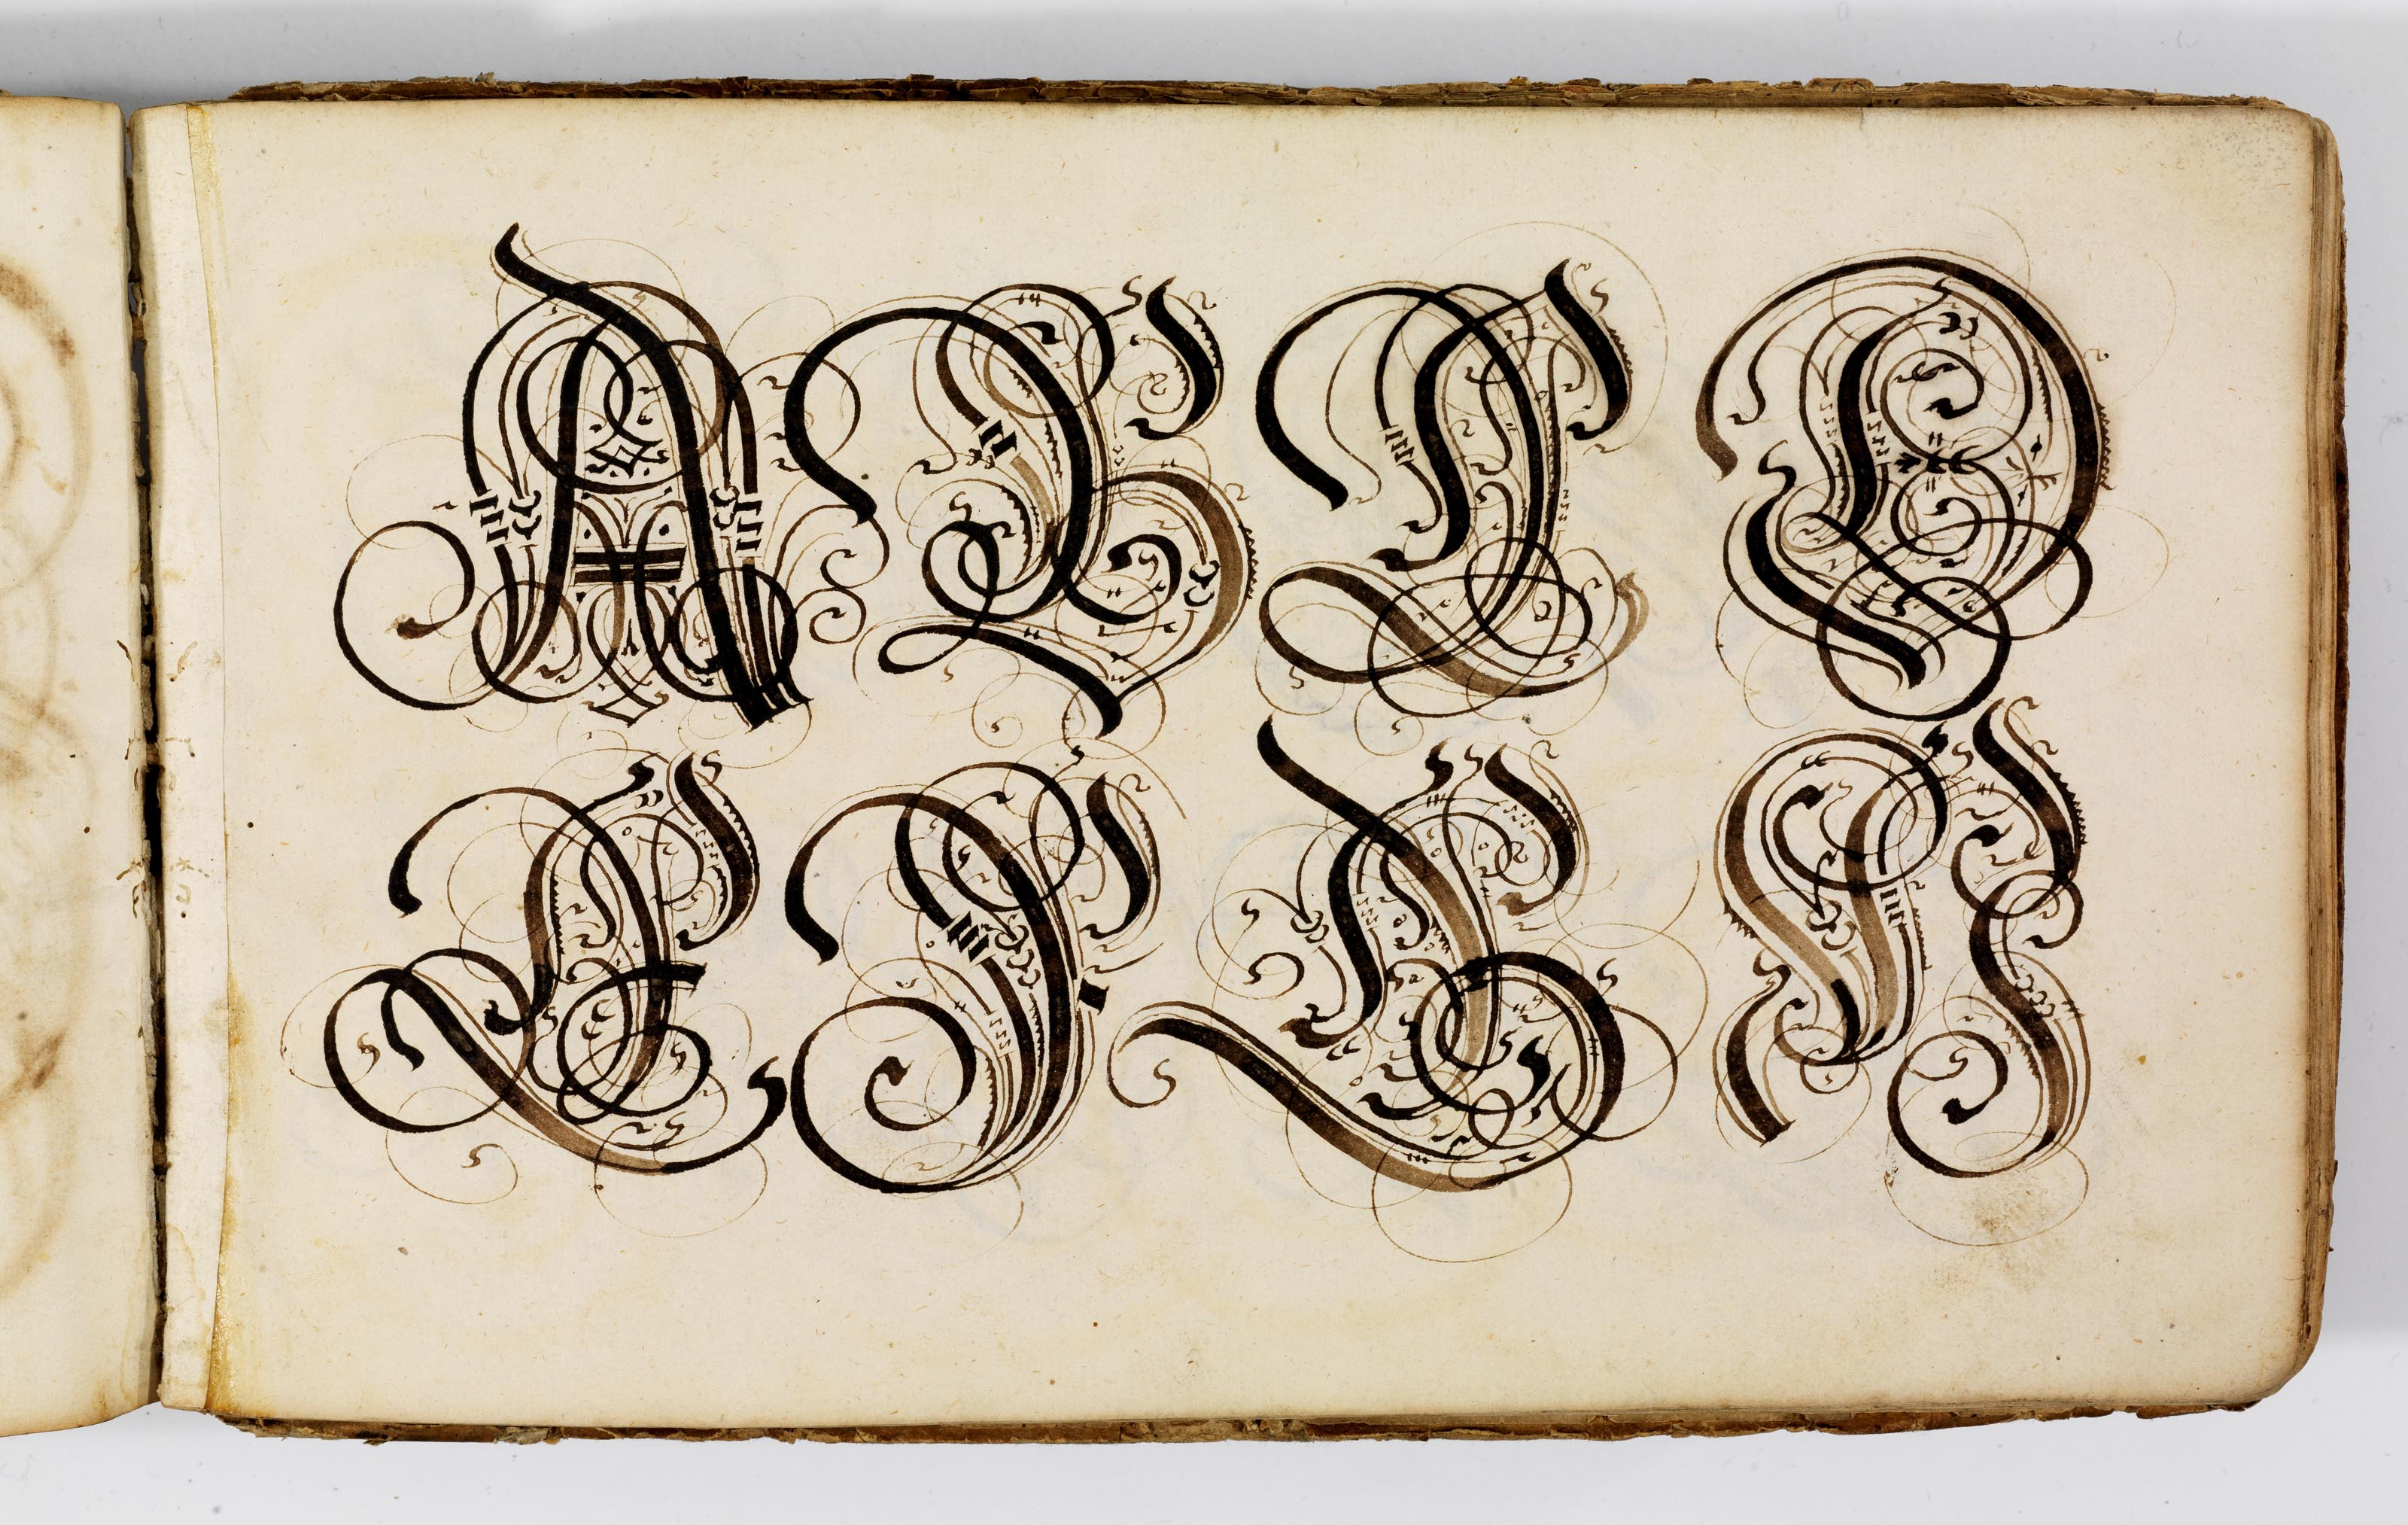 A Spectacular Cadel Gothic Script Broad Or Edged Pen